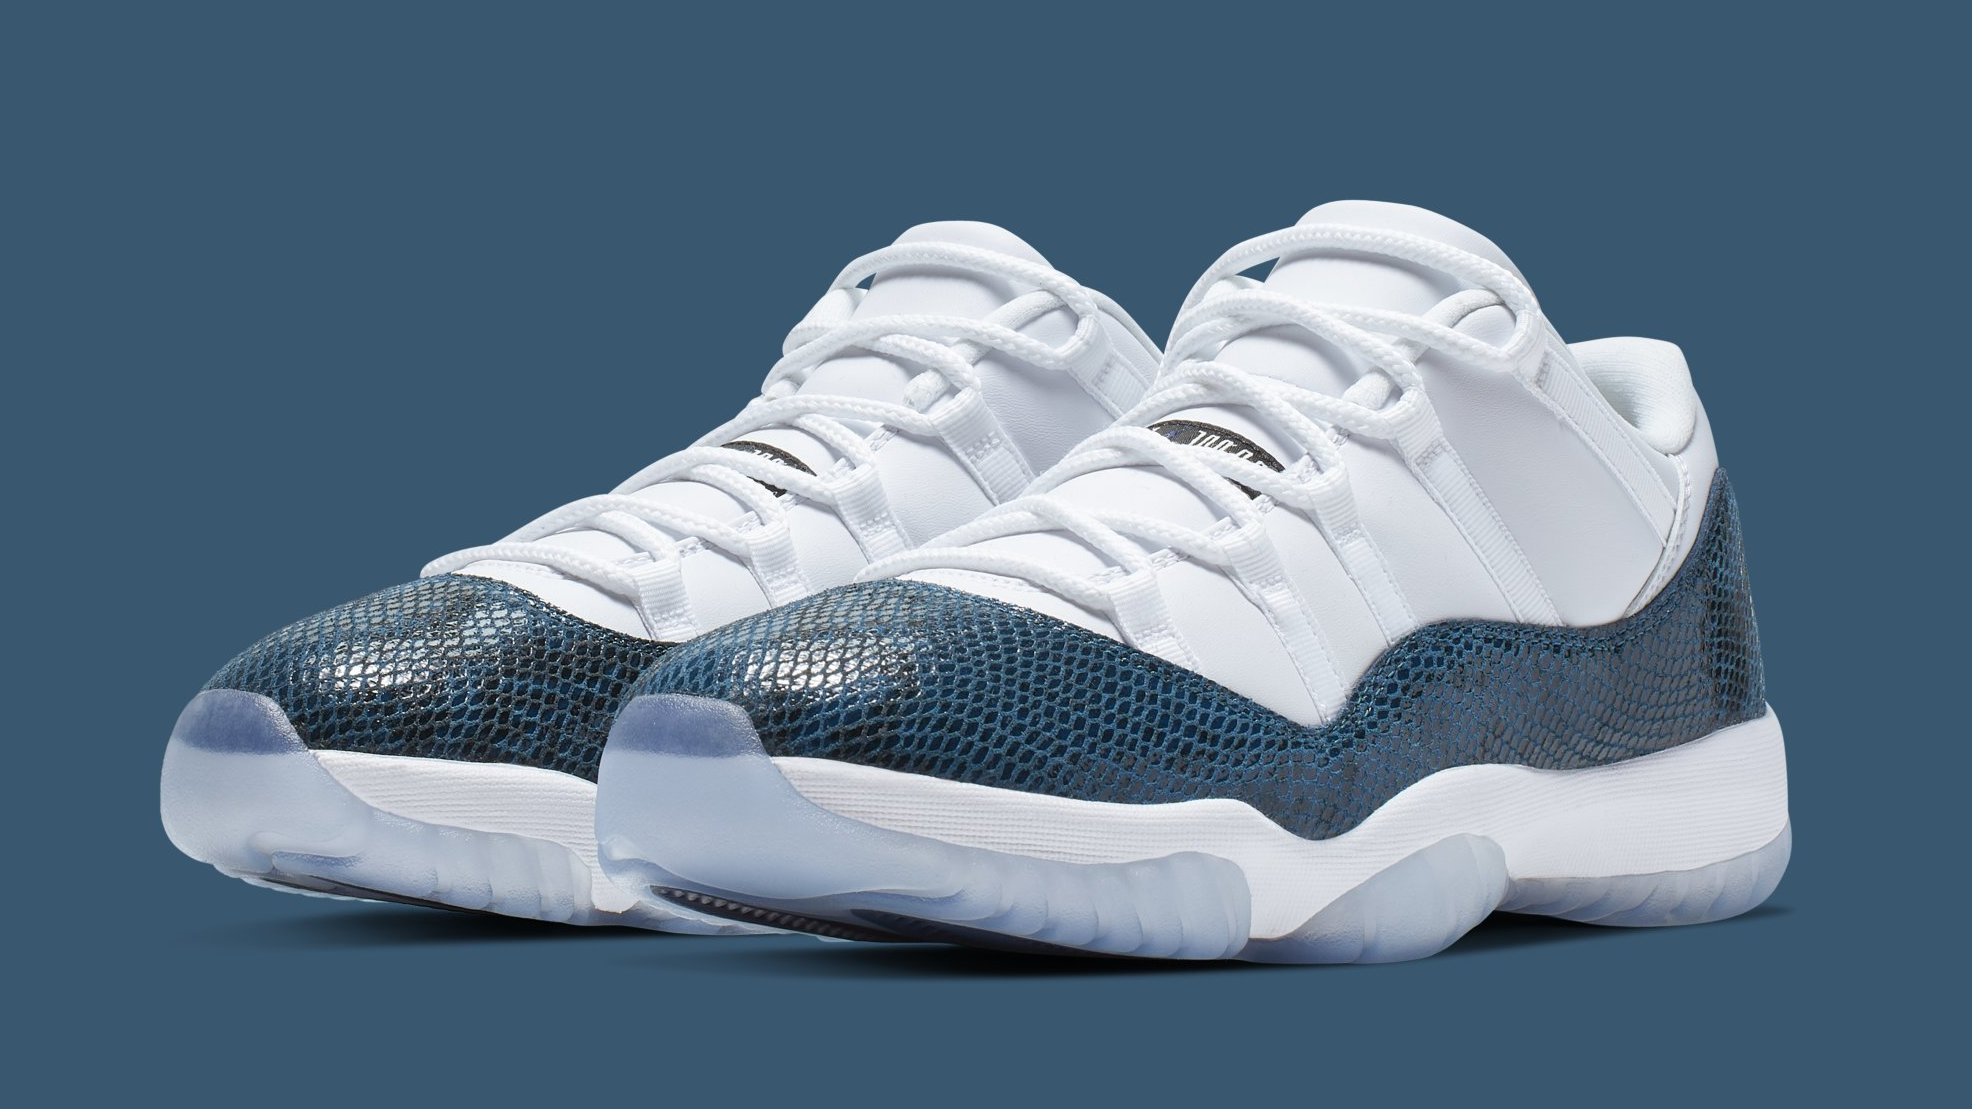 825ff50fa26d Air Jordan 11 Low  Blue Snakeskin  Release Date CD6846-102